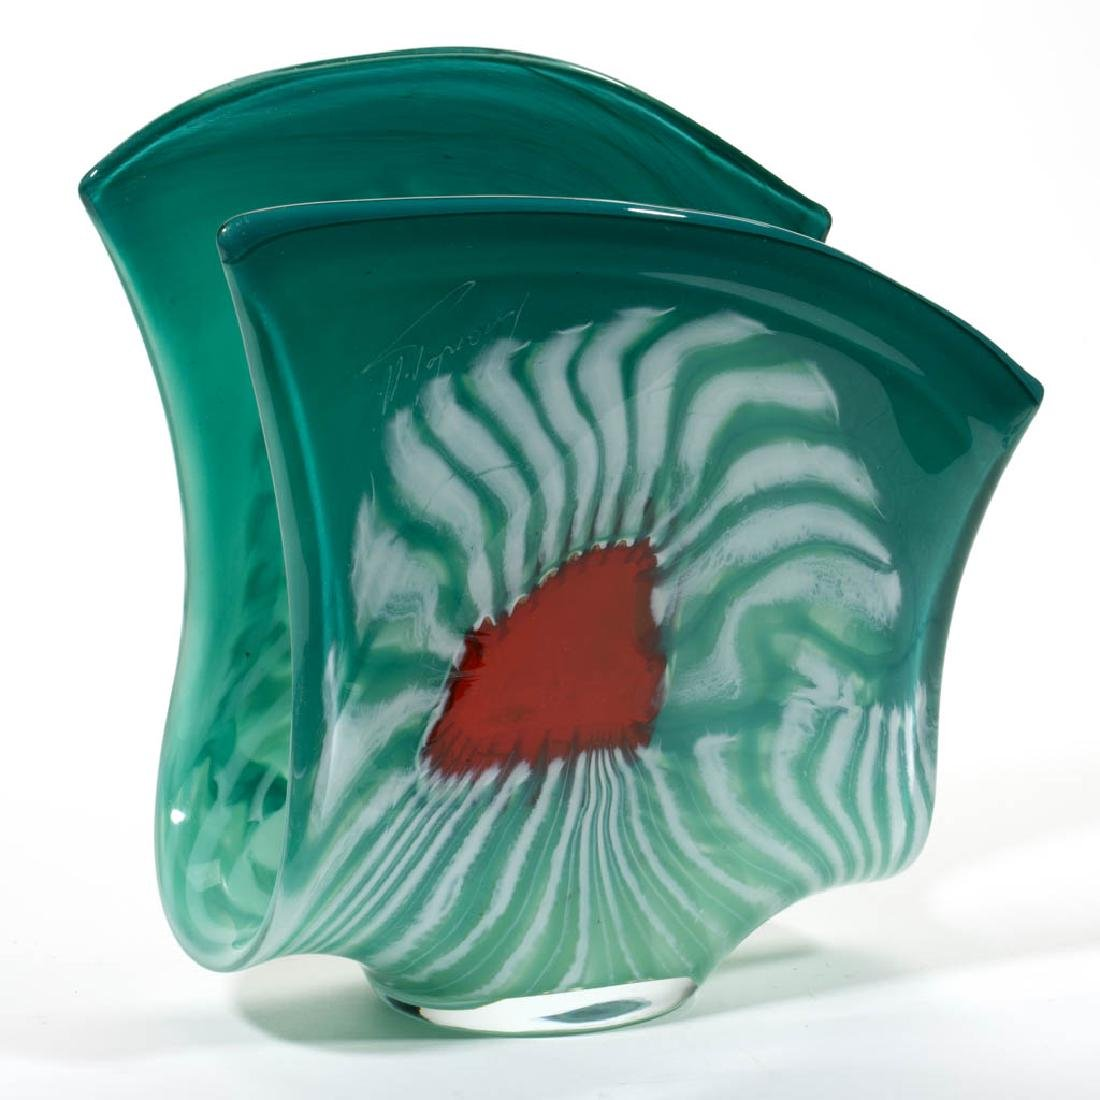 UNIDENTIFIED STUDIO ART GLASS SCULPTURE